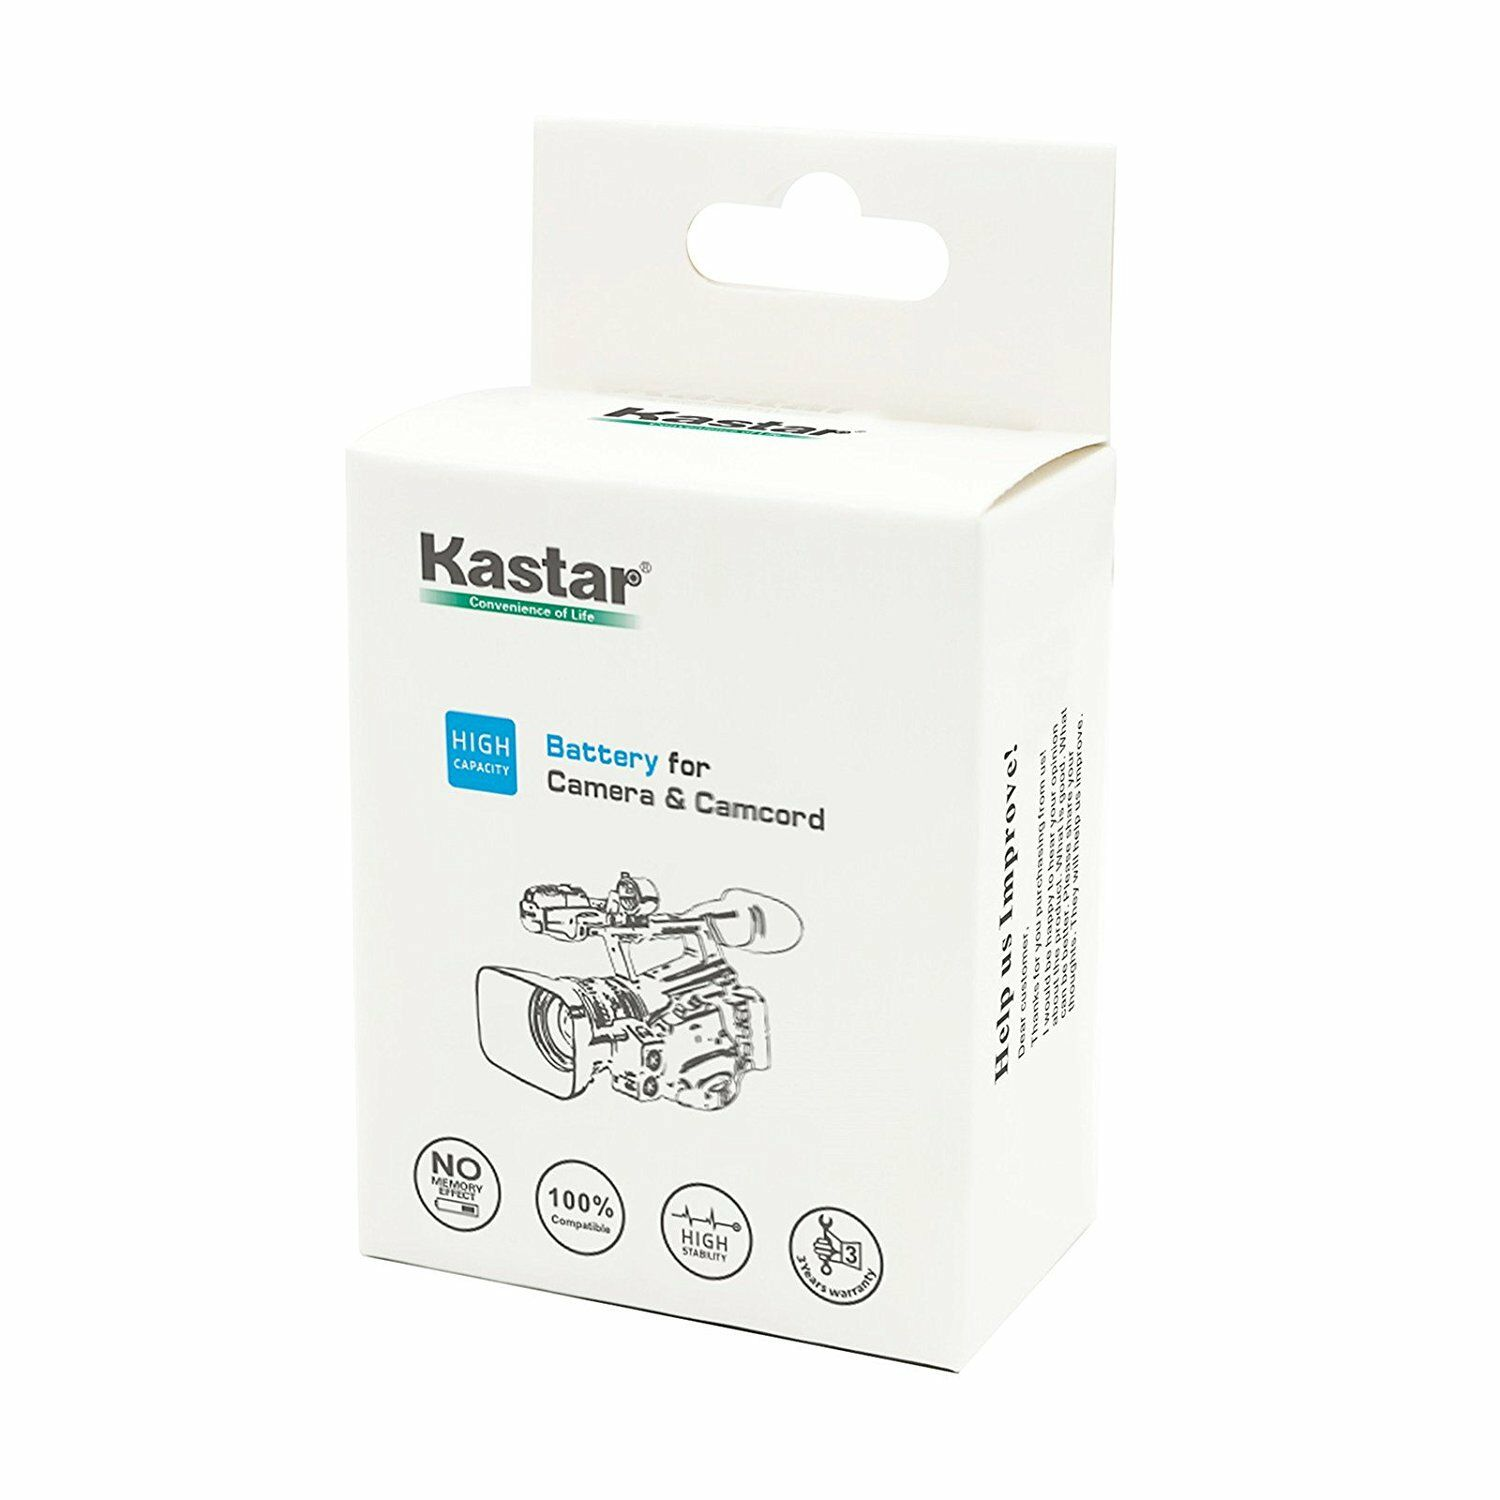 Kastar F980 Battery LCD Charger For Sony NP-F960 HDV-Z1 DCR-TR8000 HDV-FX1 - $7.99